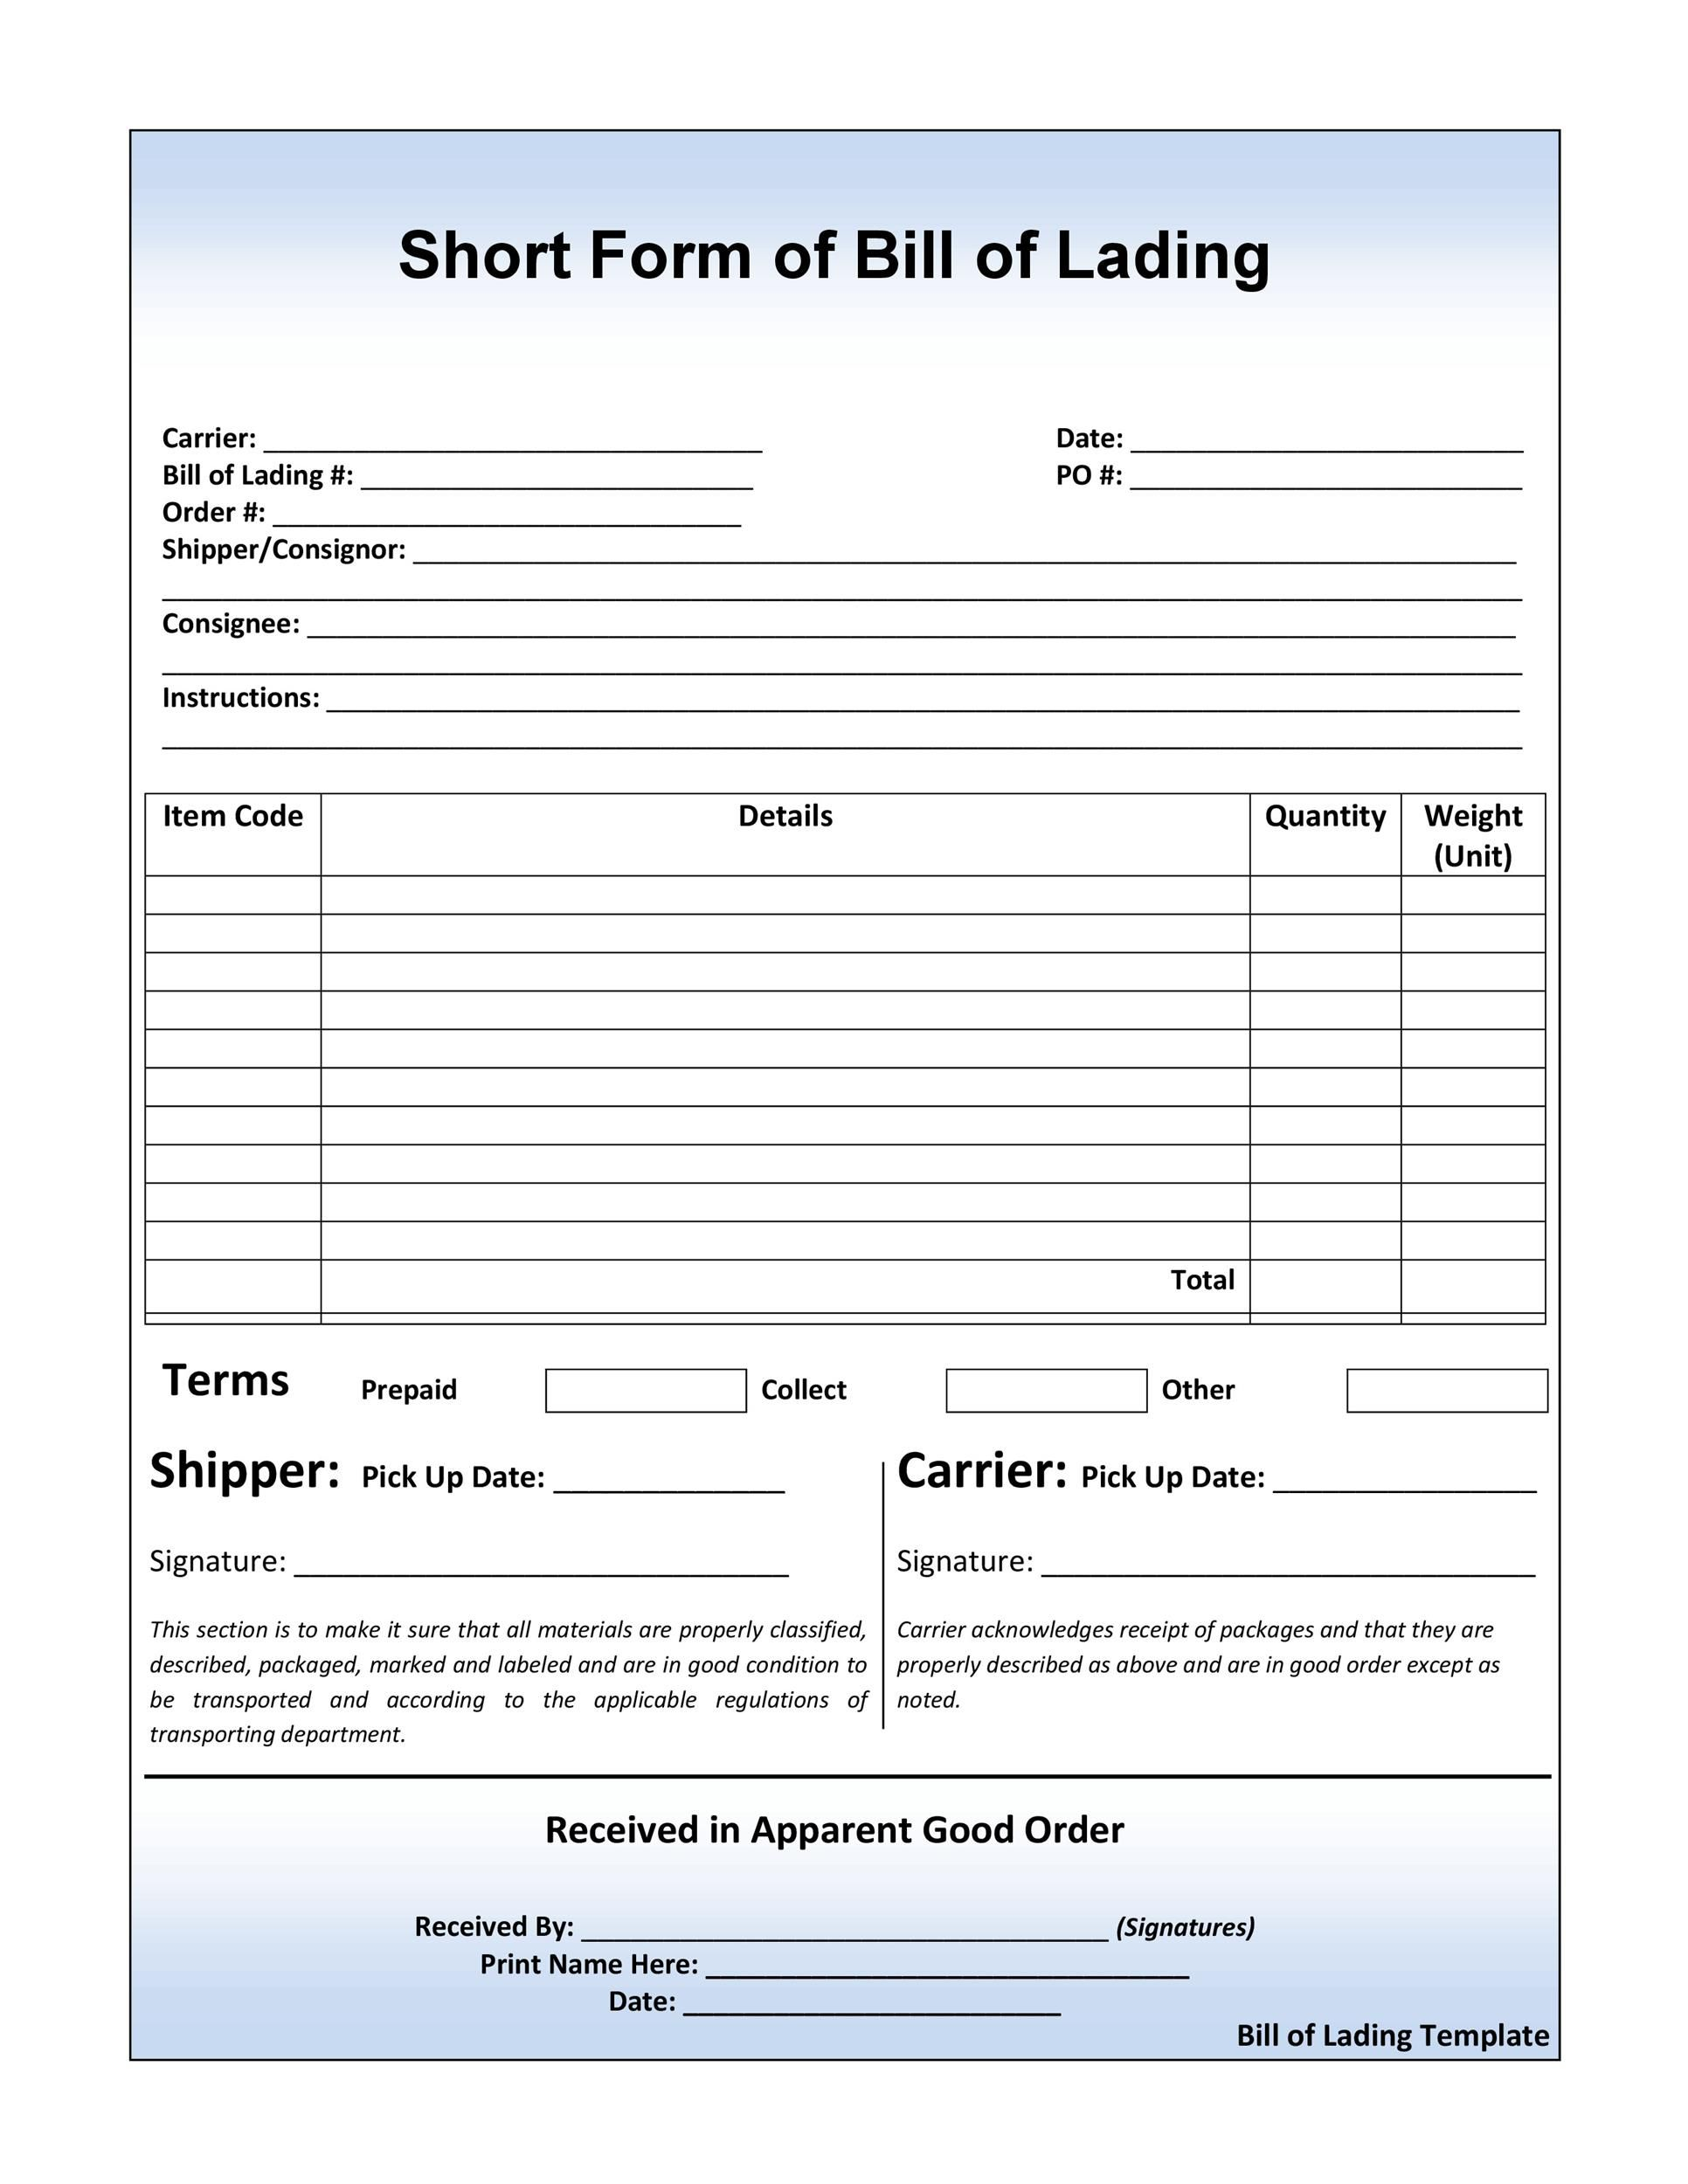 008 Excellent Bill Of Lading Short Form Word High Definition  TemplateFull